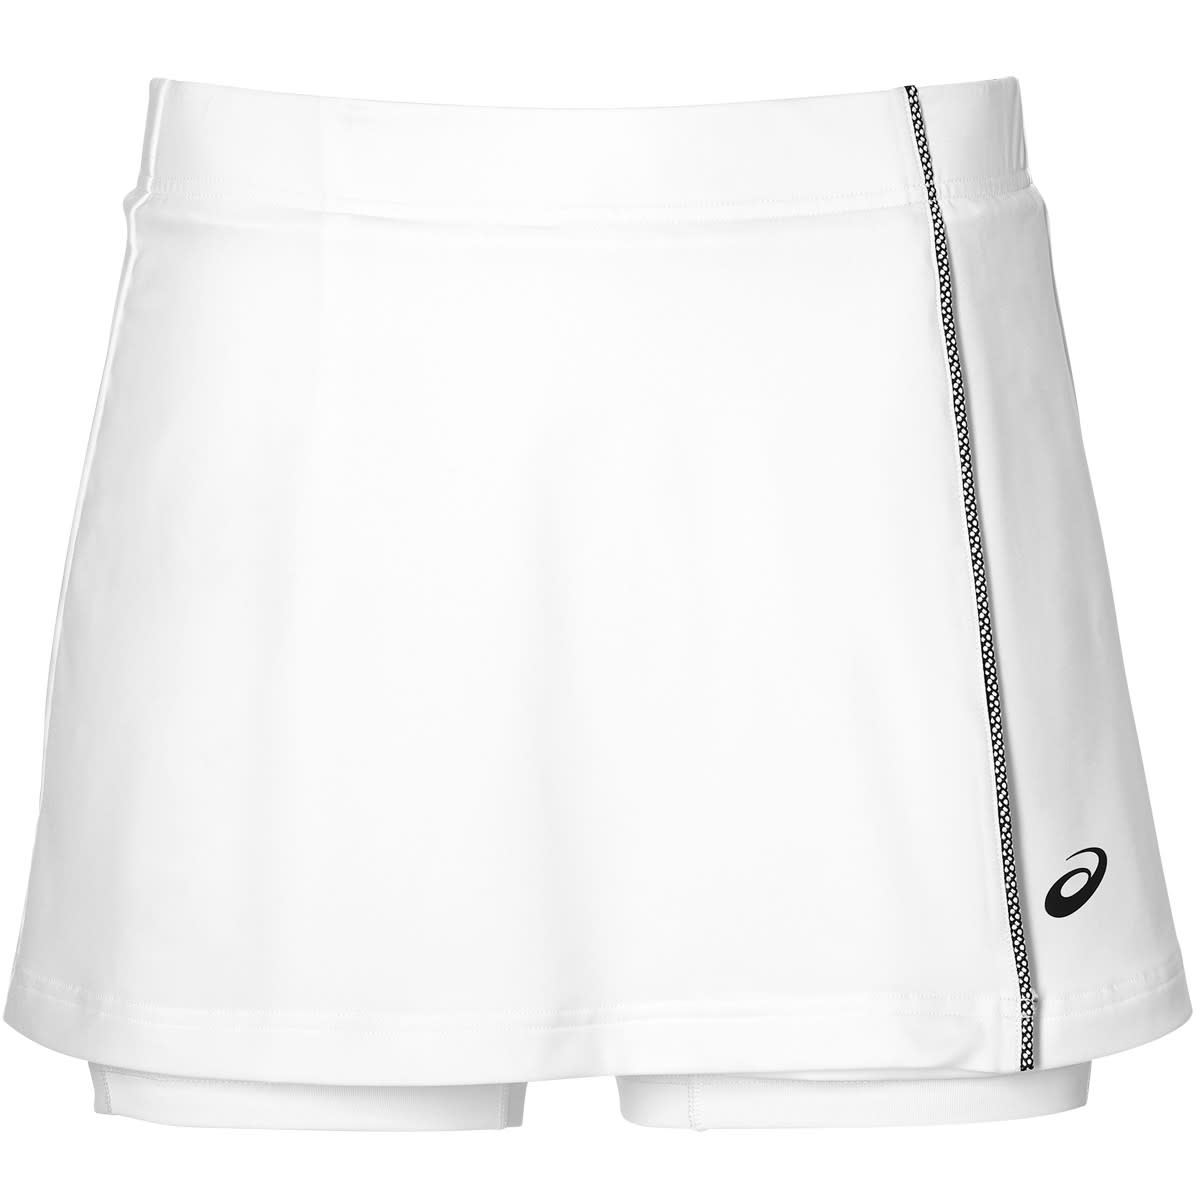 Asics White Tennis Skirt